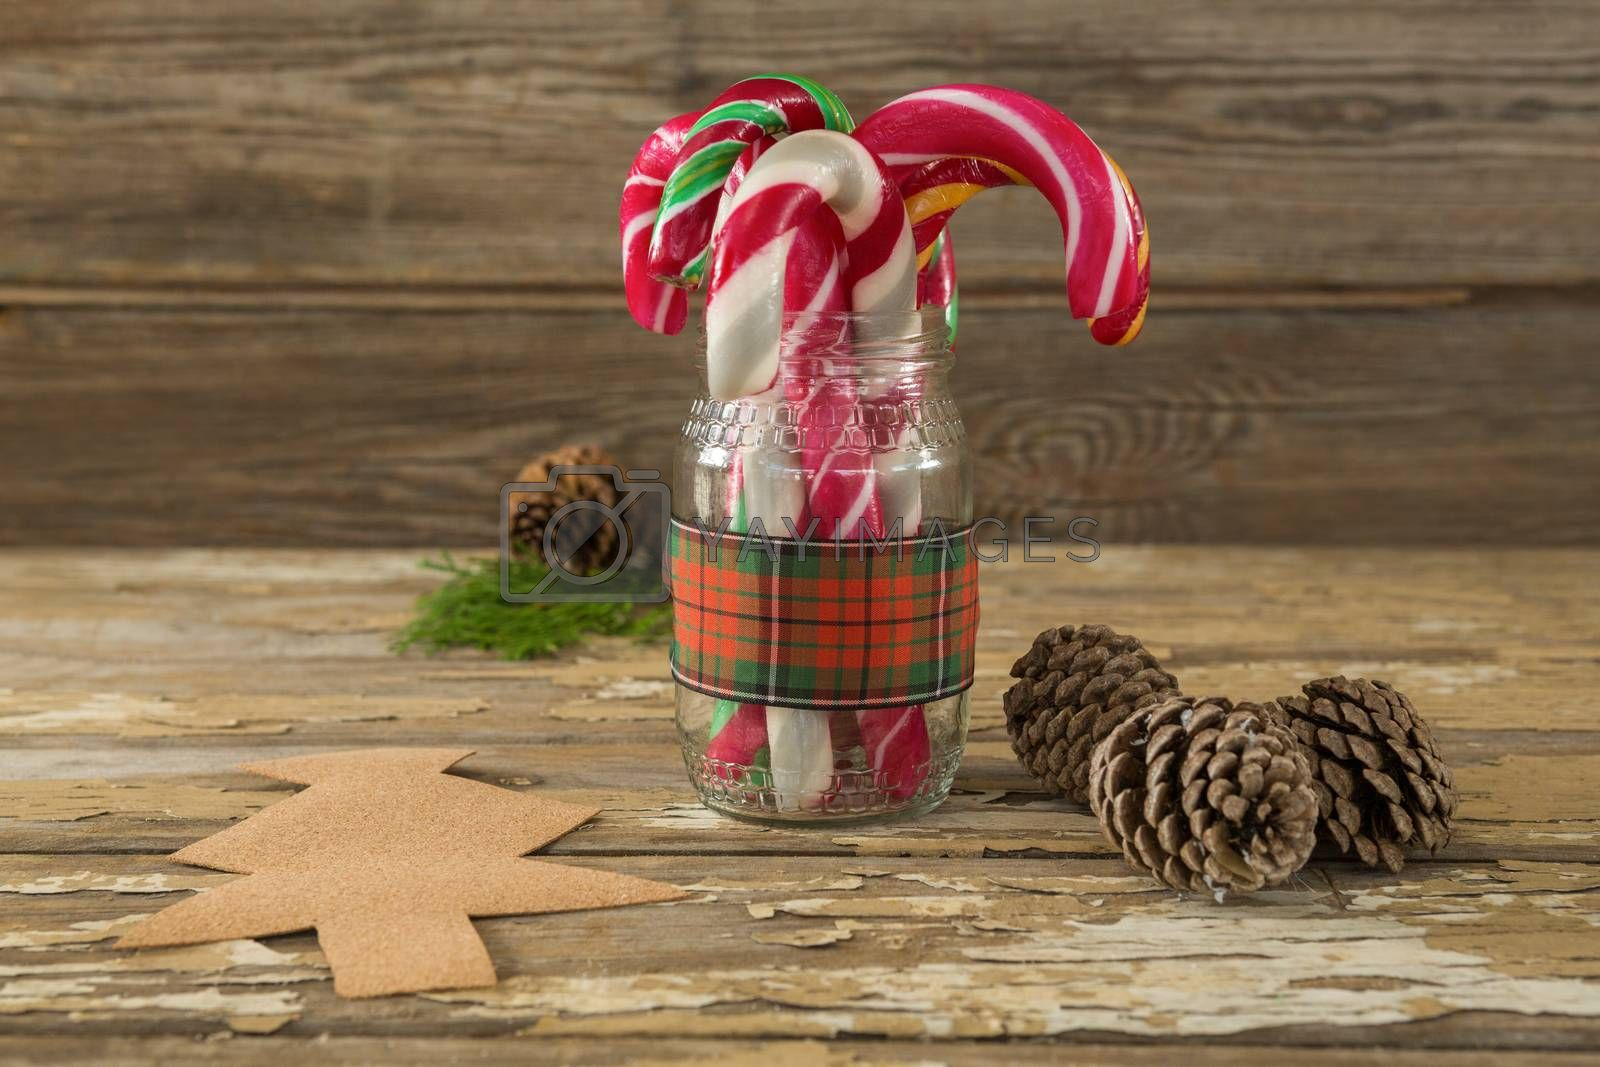 Pine cones and candy cane in jar against wooden plank by Wavebreakmedia